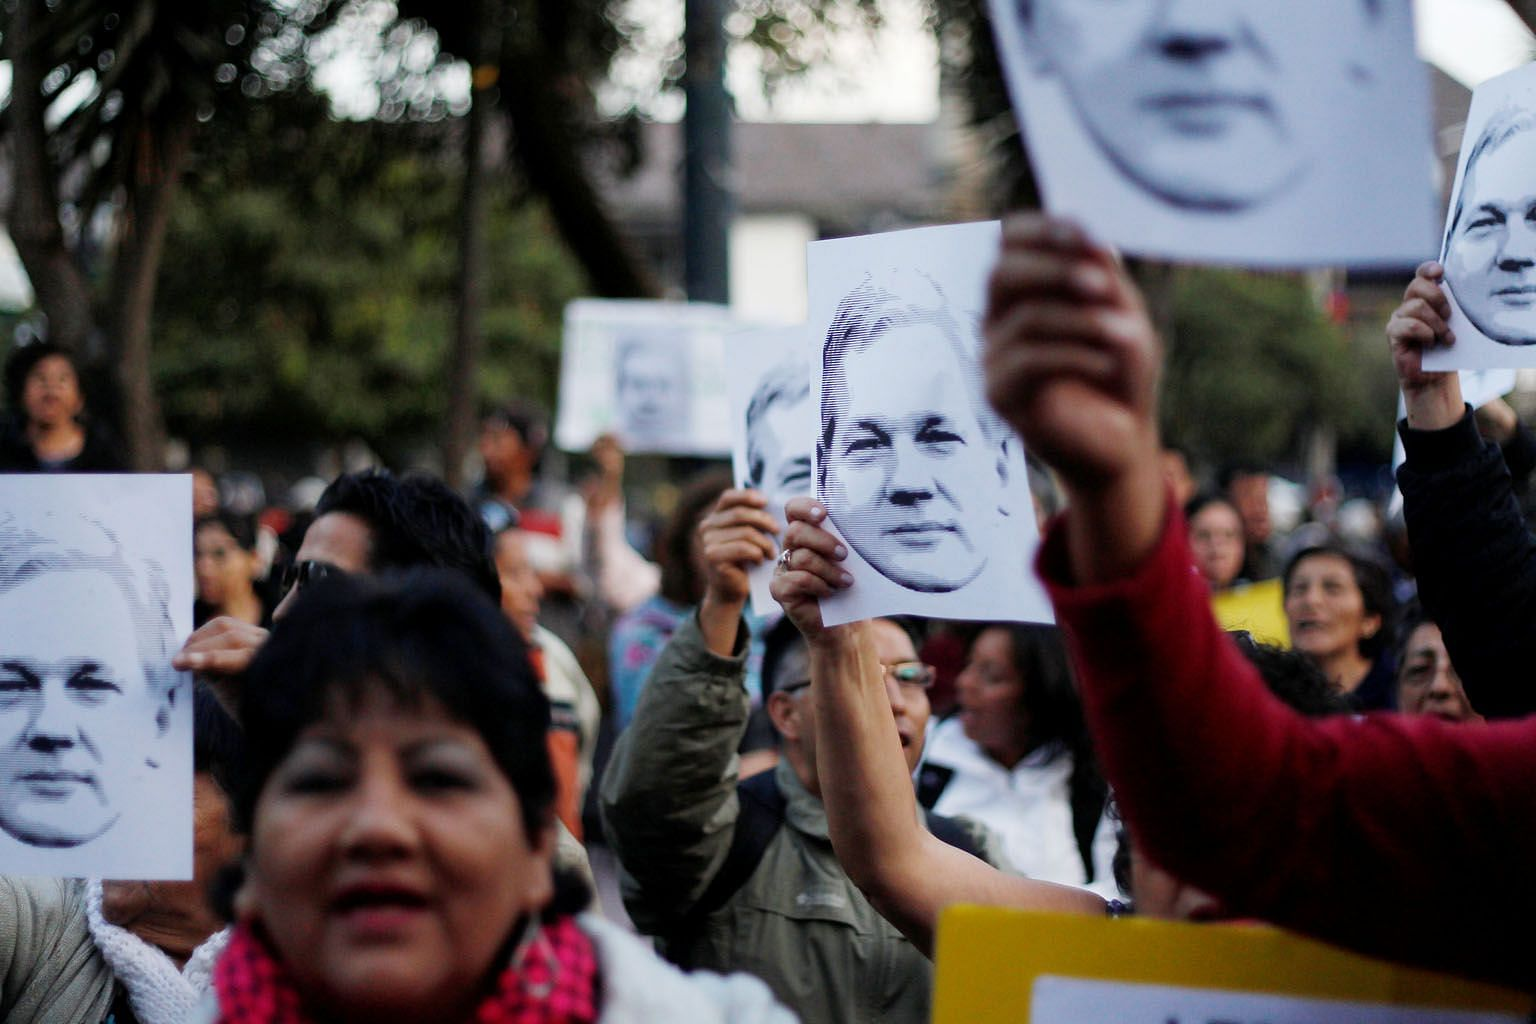 Supporters of WikiLeaks founder Julian Assange during a demonstration in front of the presidential palace in Quito, Ecuador, last month. He has been taking refuge in the country's embassy in London for six years now.